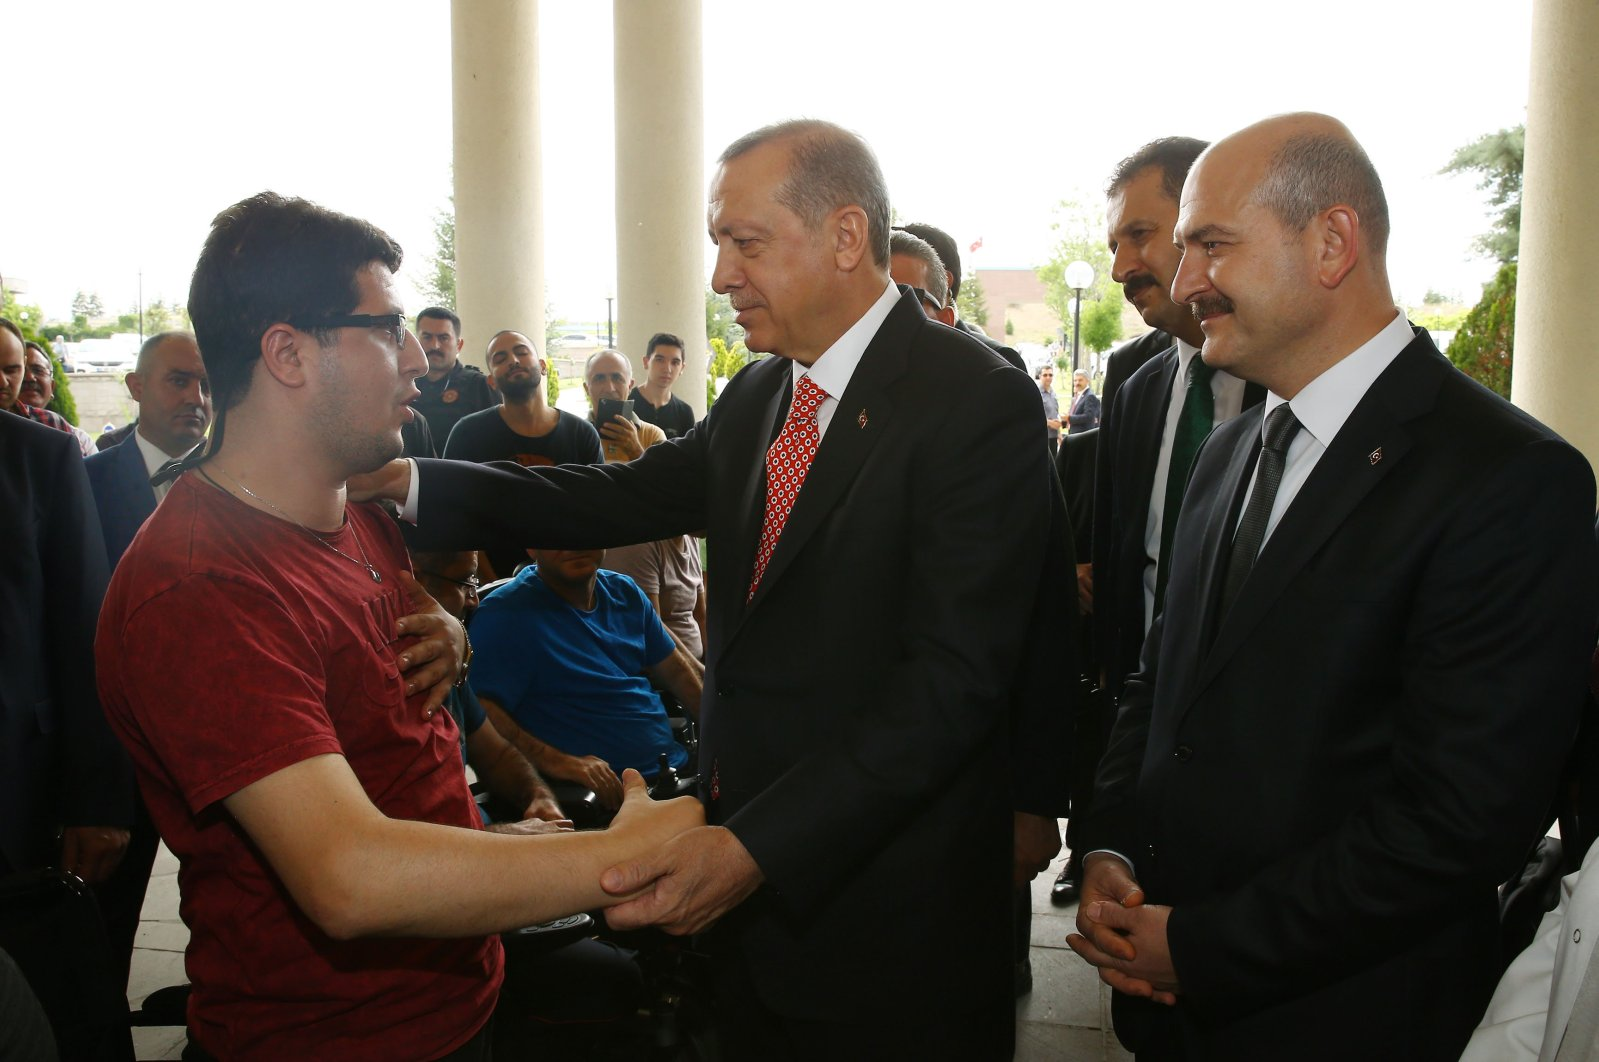 President Recep Tayyip Erdoğan (C) and Interior Minister Süleyman Soylu (R) visit wounded veterans at a rehabilitation hospital in Ankara, Turkey, July 5, 2017. (Sabah Photo via the Presidential Complex)